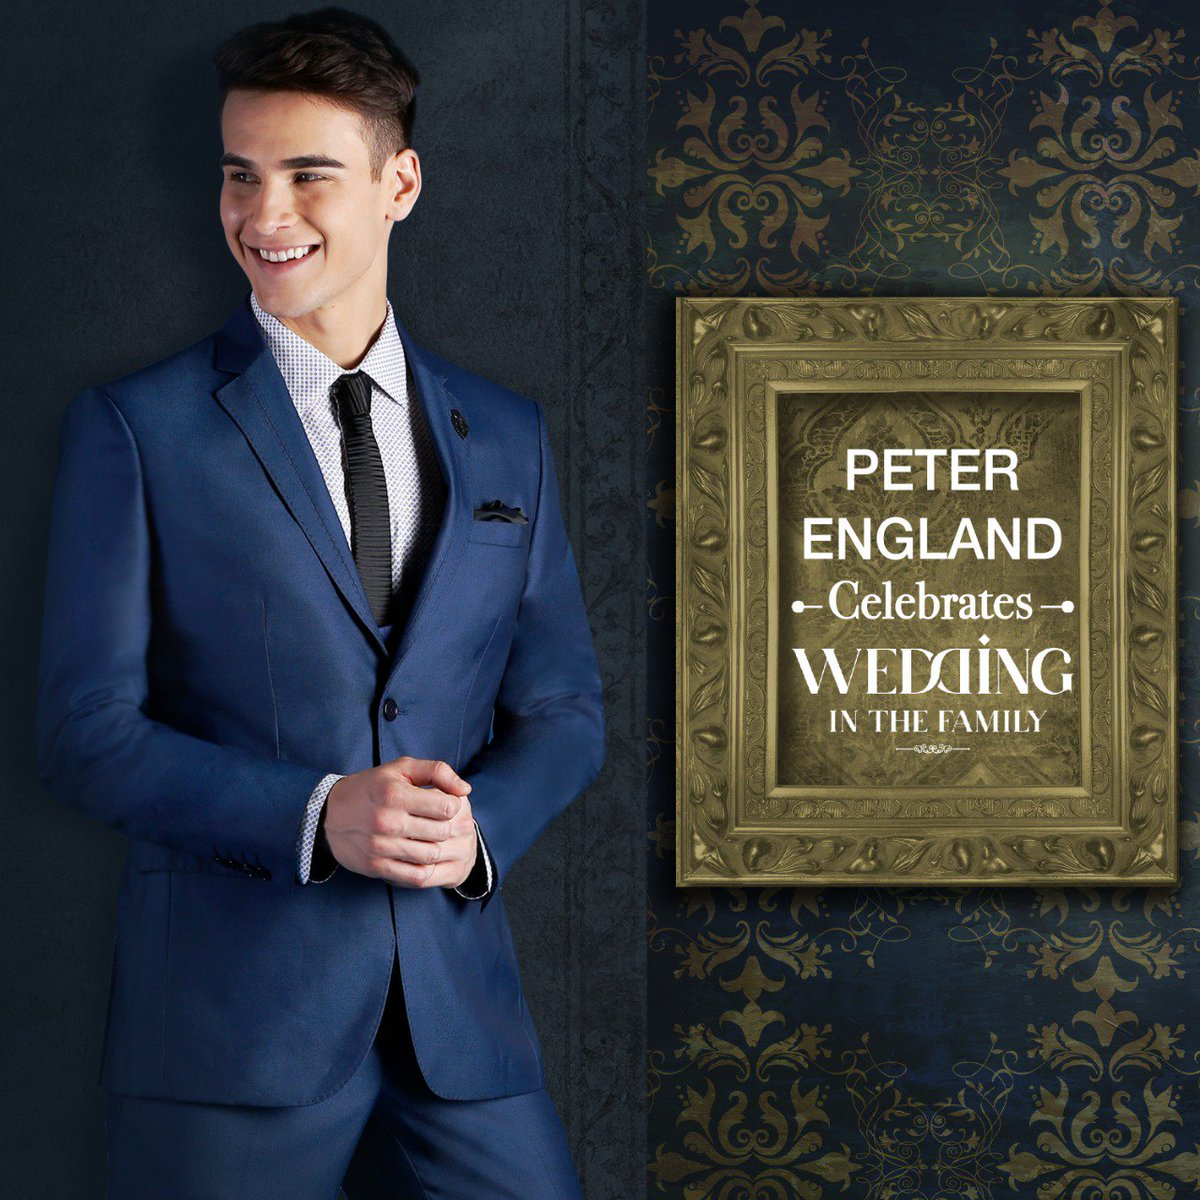 Man At The Wedding Presenting An Exclusive Range Of Suits Blazers By Peter England Suitupwithpeterengland Weddingwear Indianwedding Indiangroom